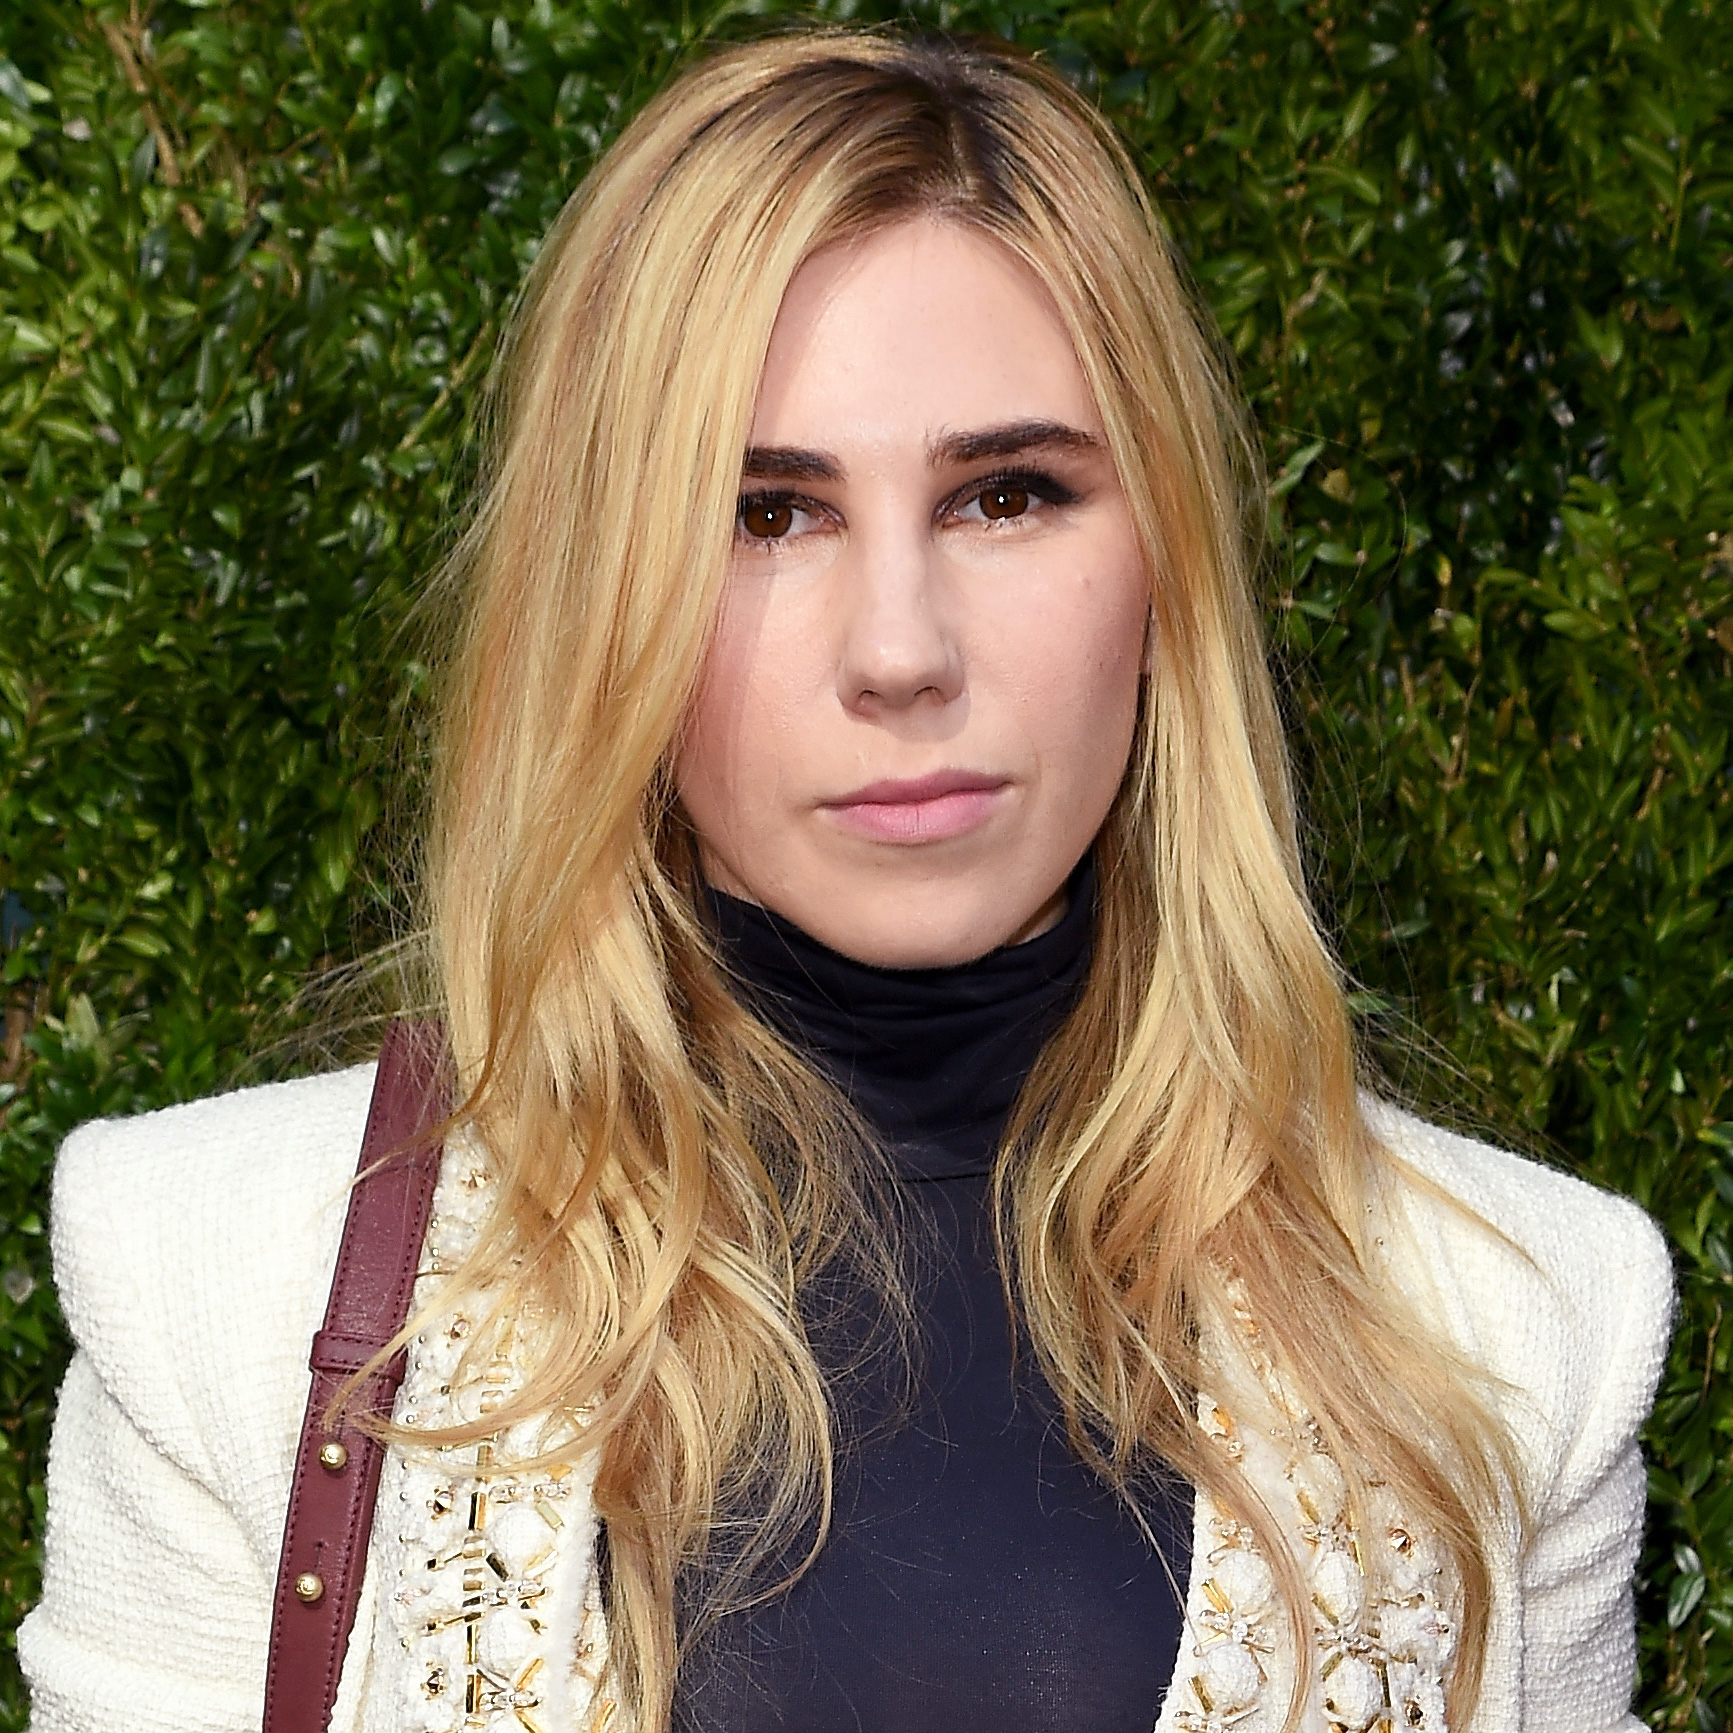 Celebs Who Revealed Health Issues in 2017 - Zosia Mamet